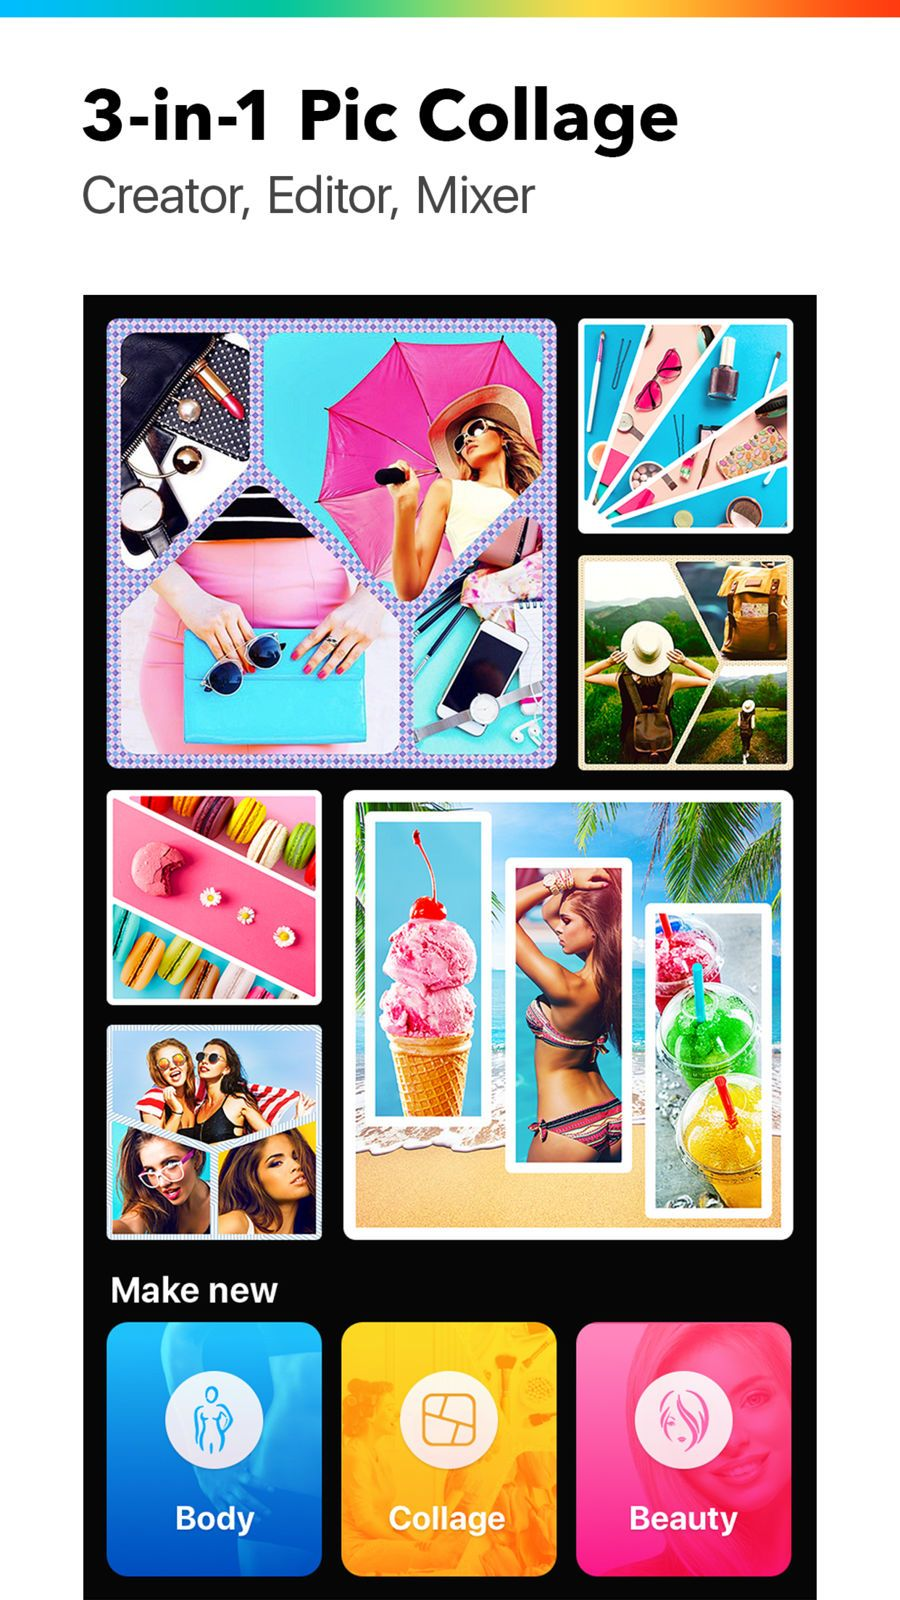 Photo Collage Collageable LifestyleVideoappsios